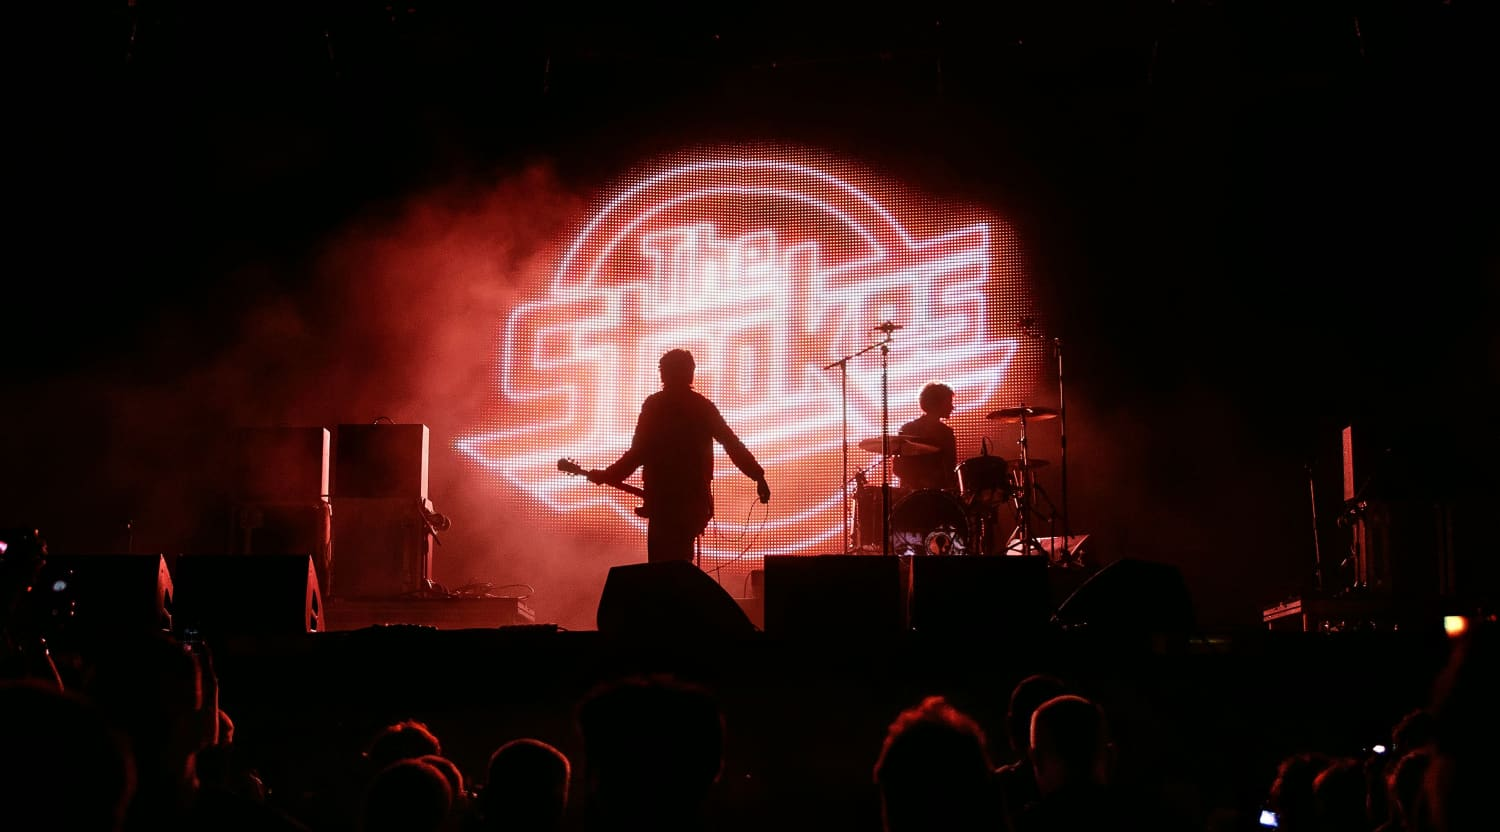 The Strokes Tickets - The Strokes Concert Tickets and Tour Dates ...